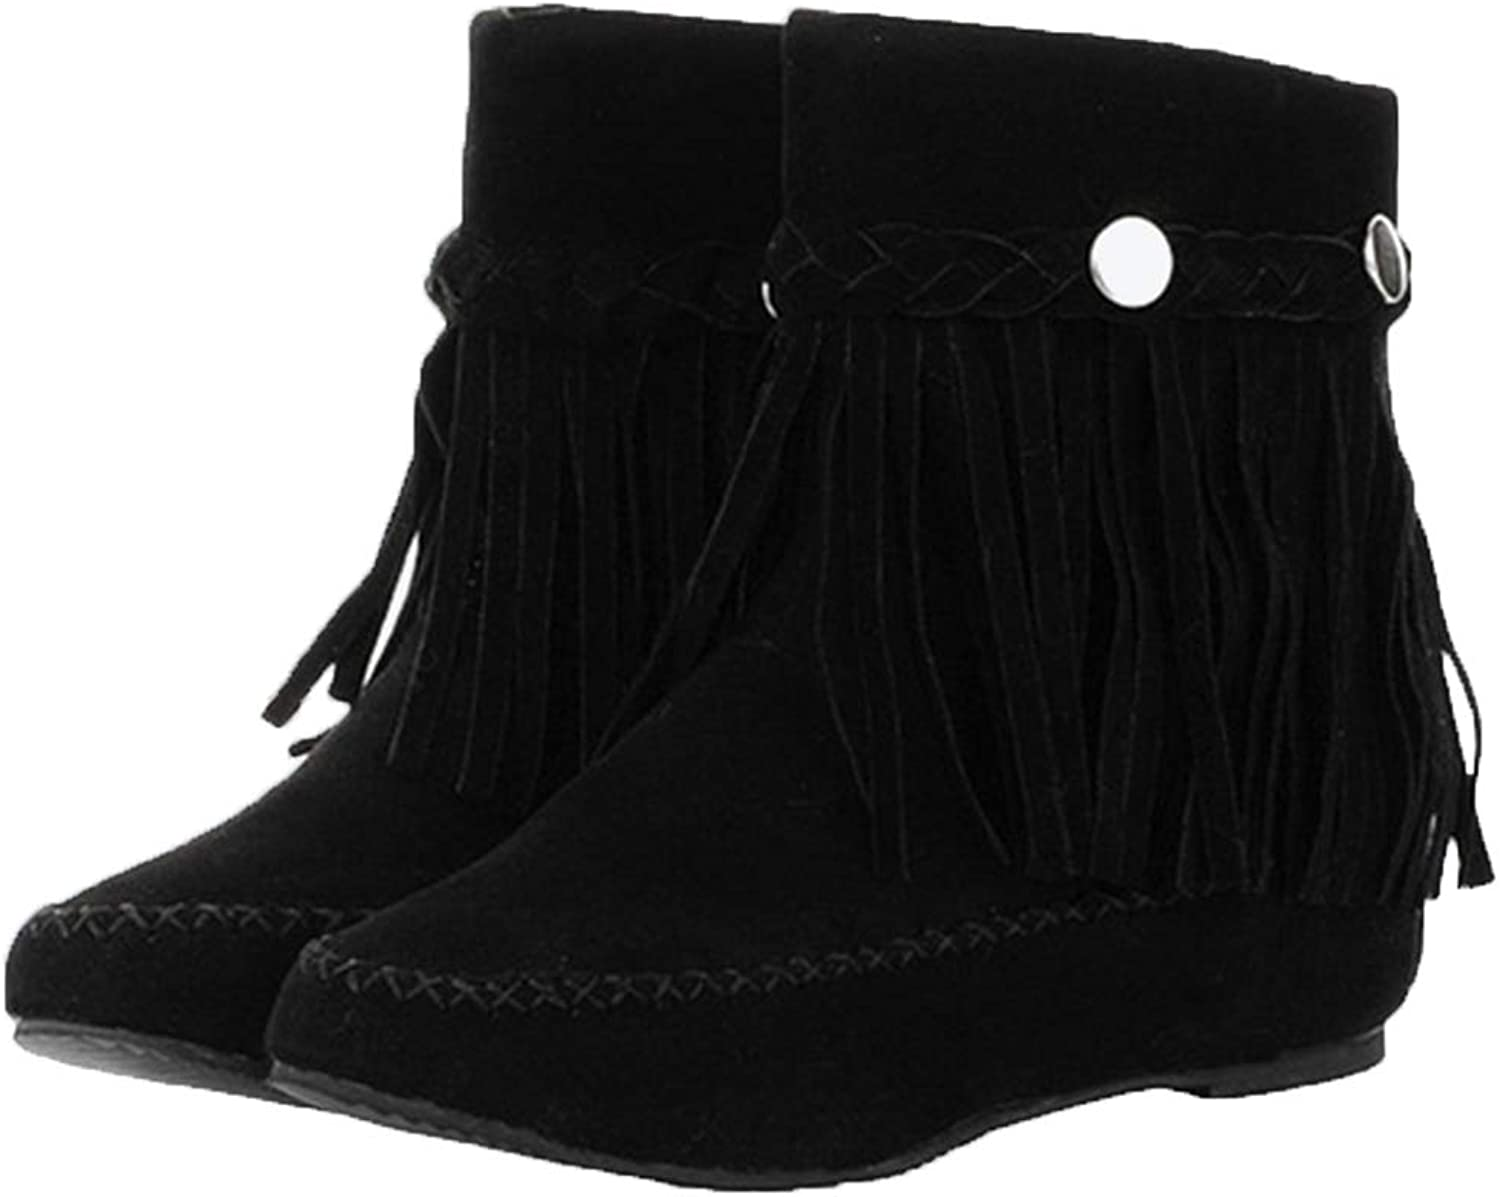 Jim Hugh Women Fringed Mid Calf Boots Fashion Winter Warm Faux Suede Slip On Snow Boots